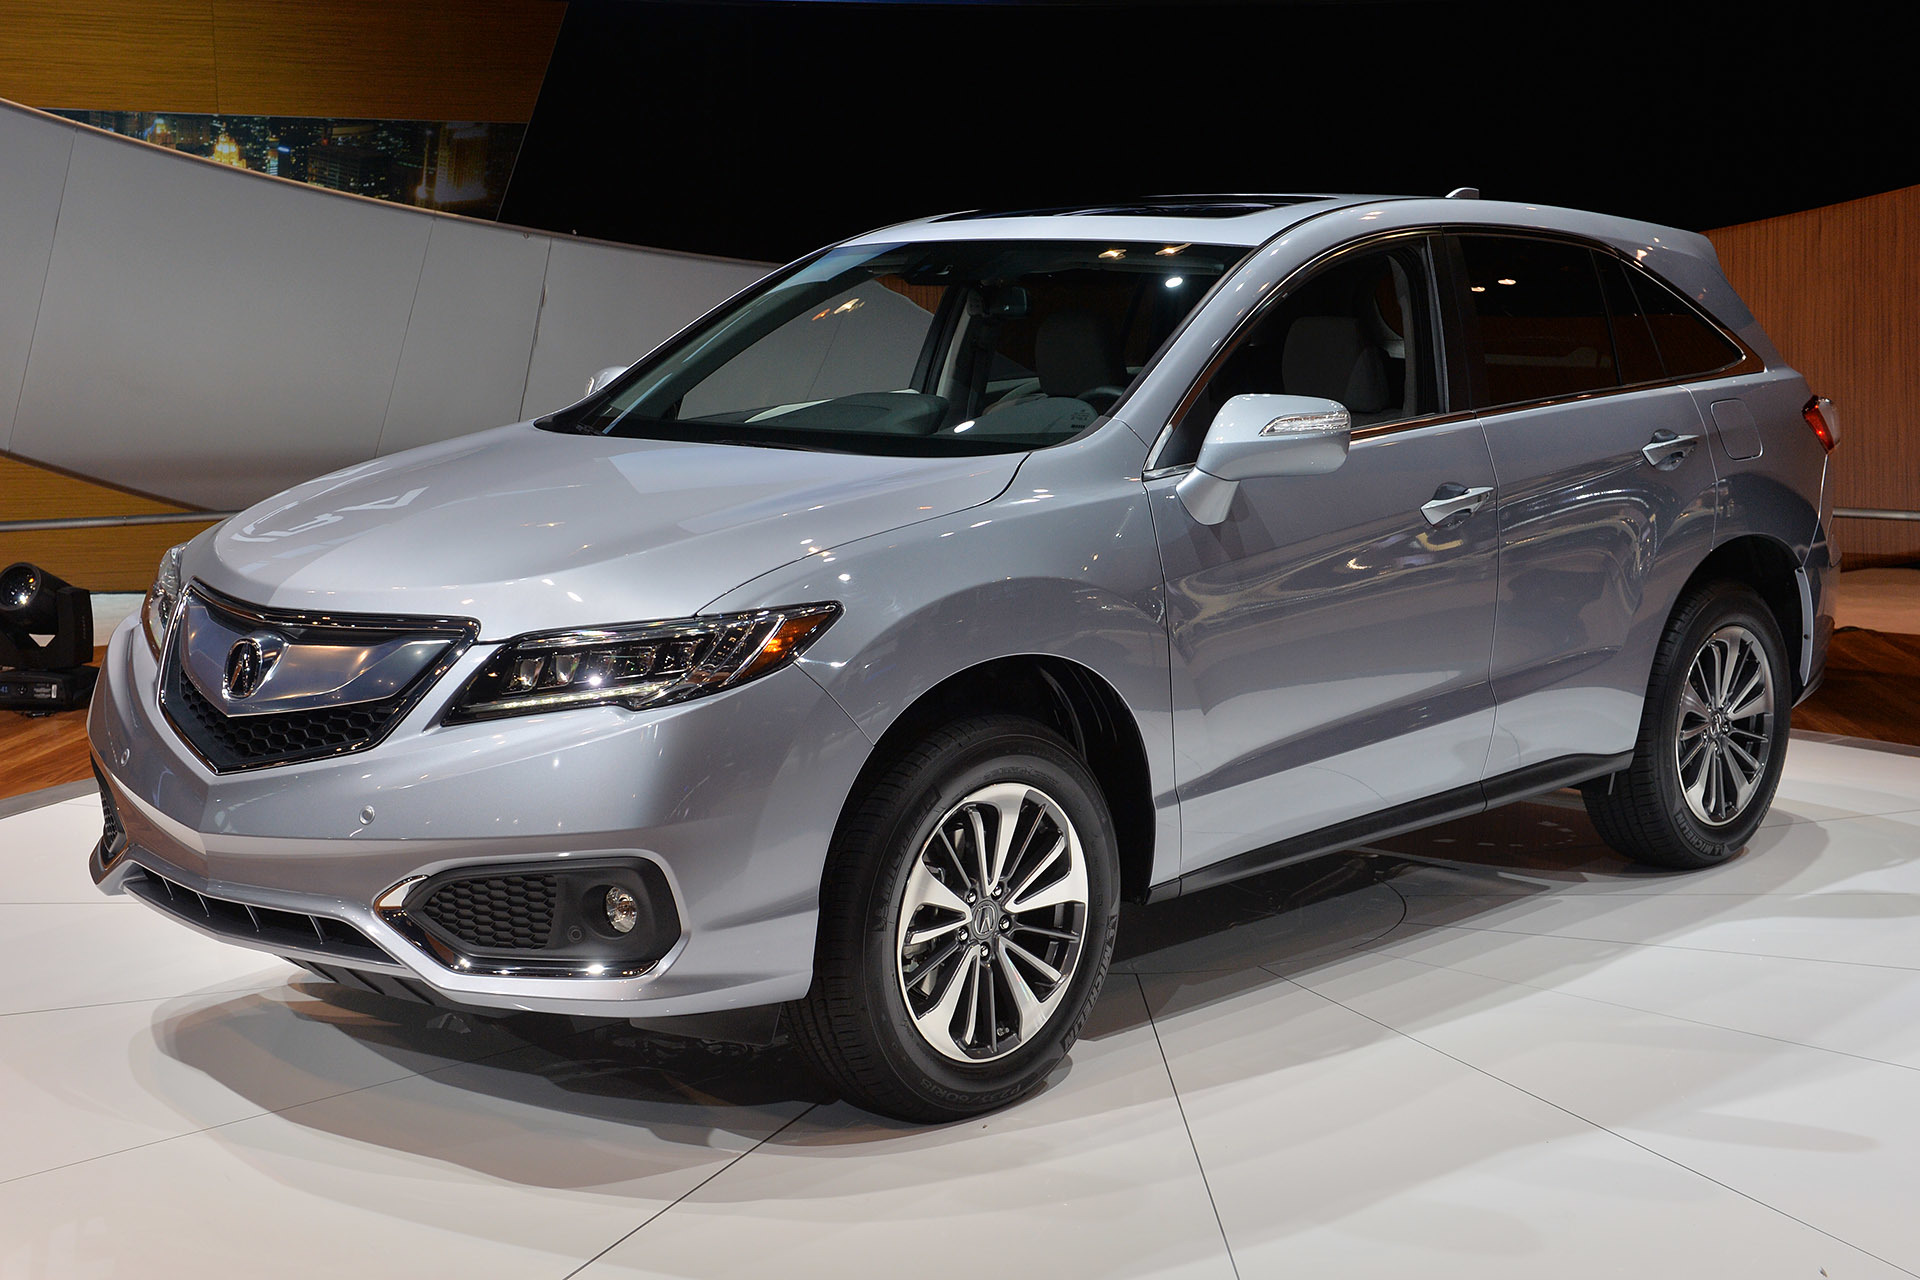 2016 acura rdx chicago 2015 photo gallery autoblog. Black Bedroom Furniture Sets. Home Design Ideas